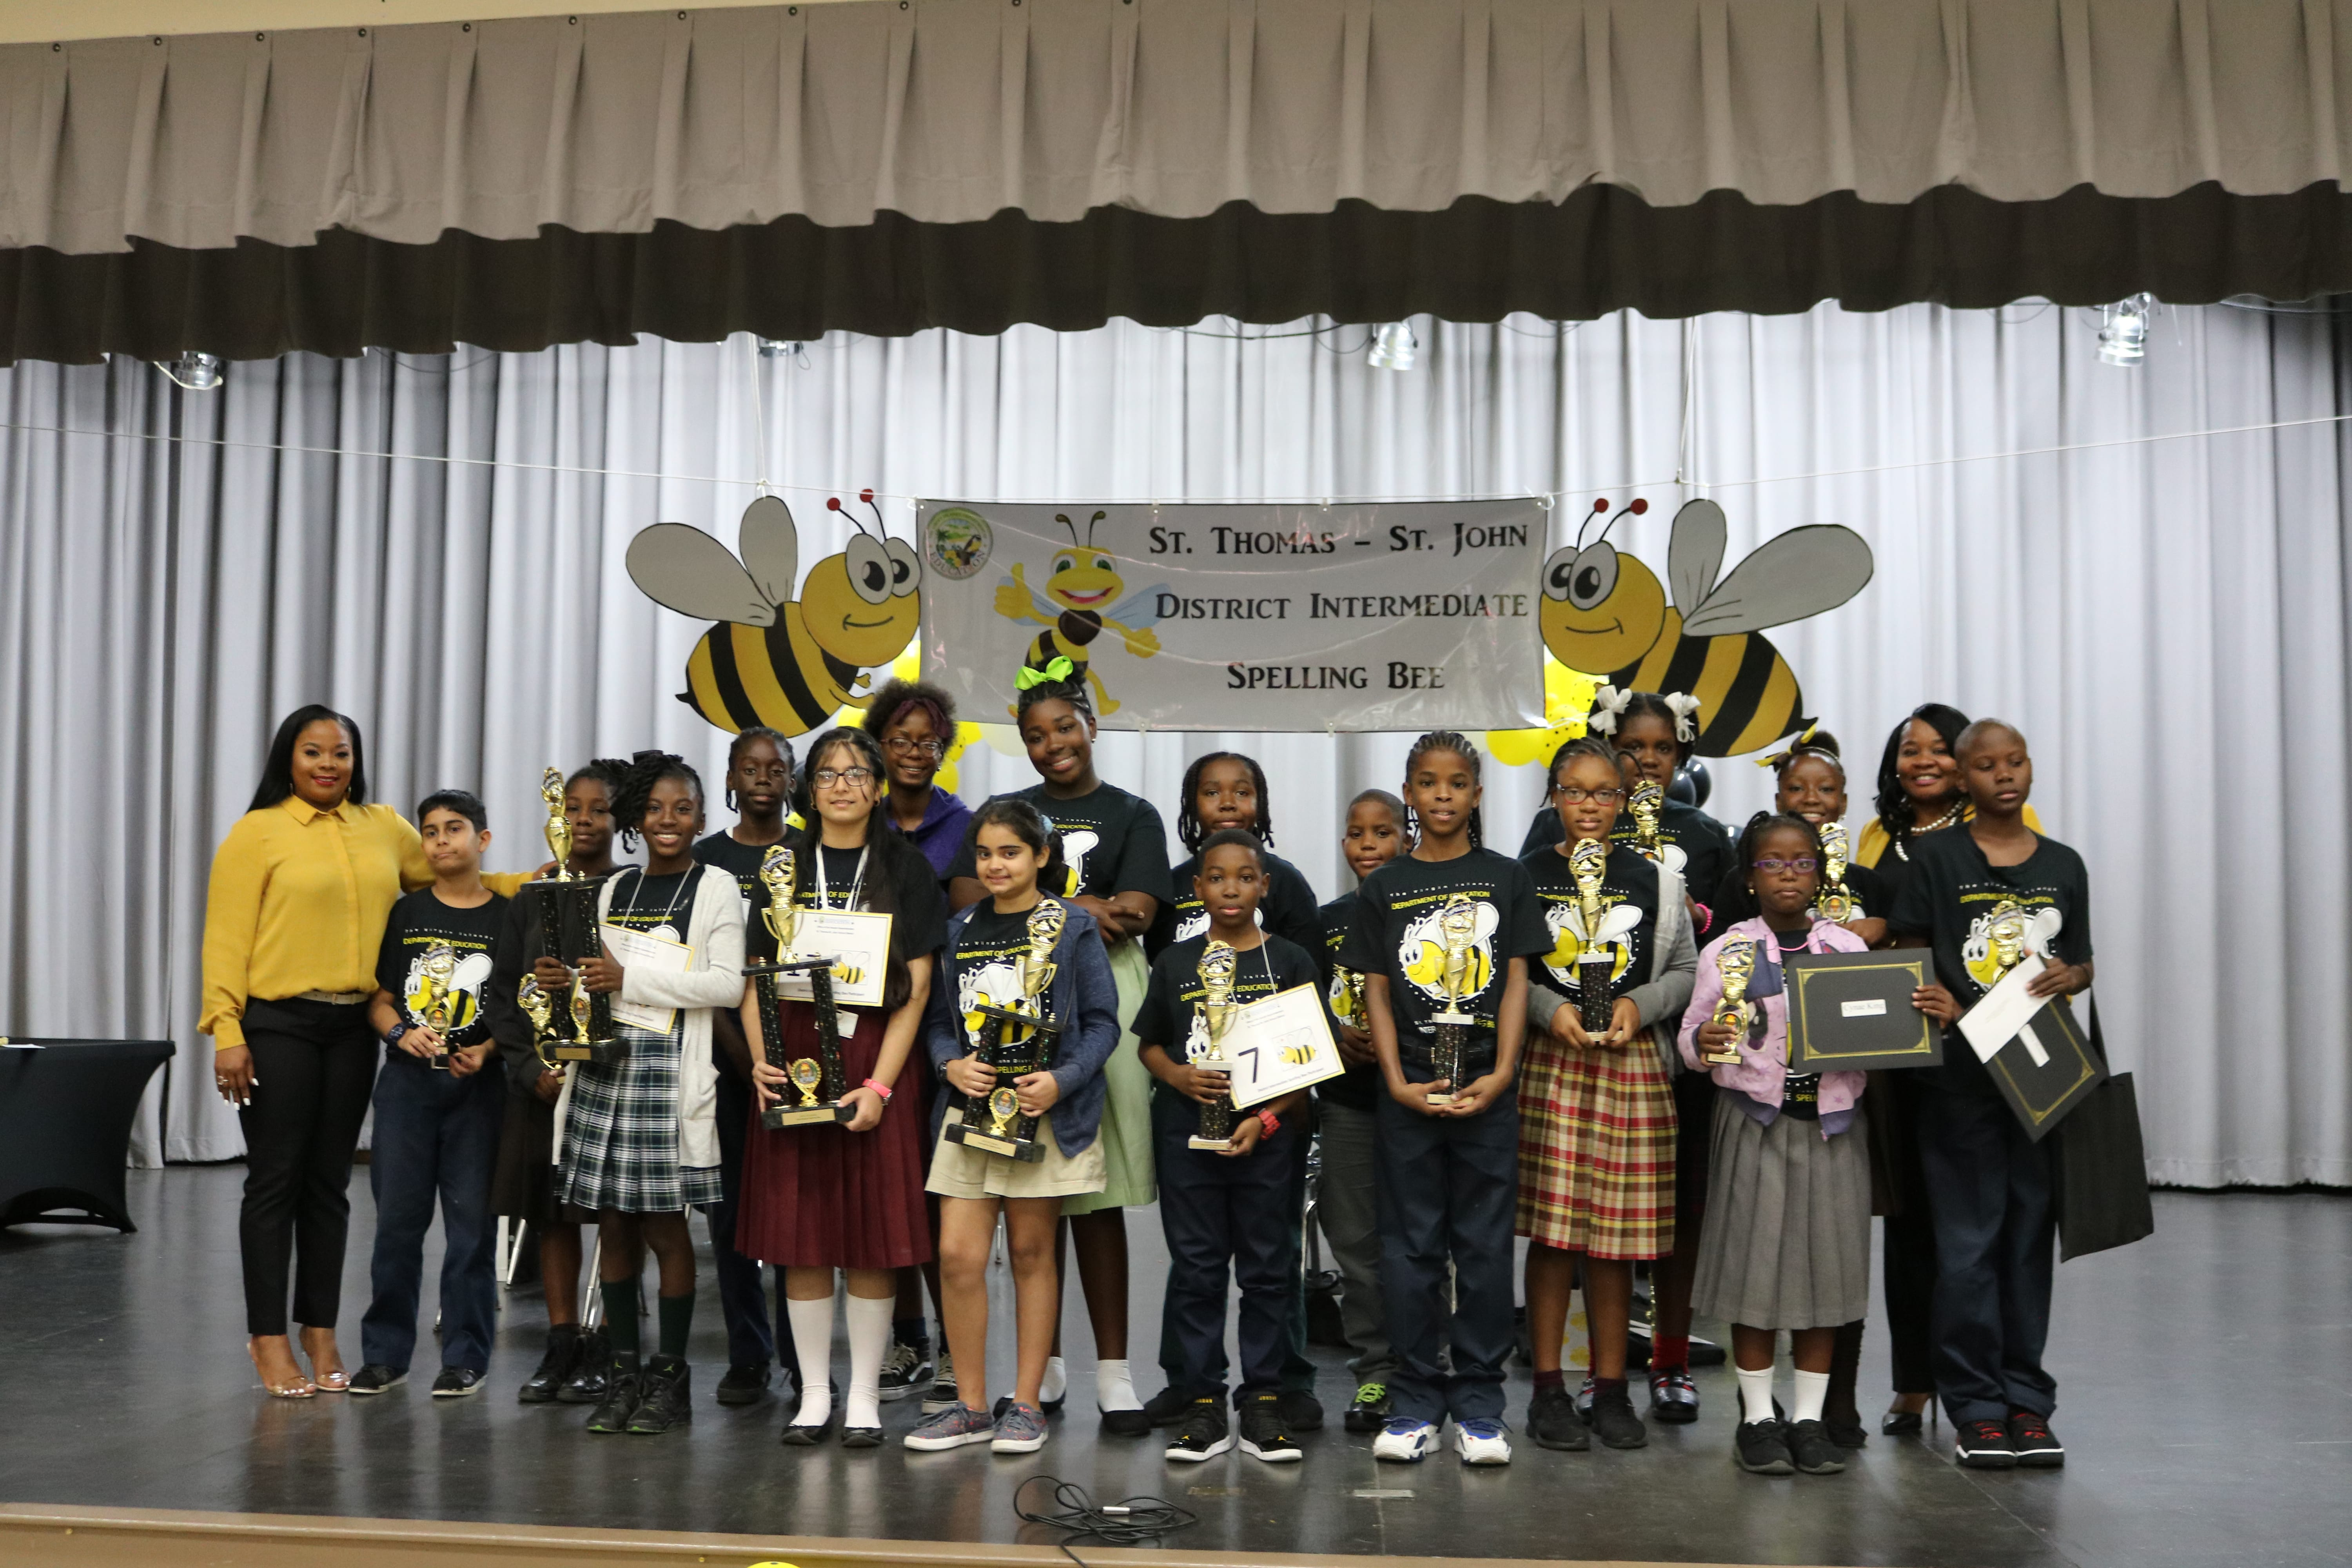 All Saints 7th Grader DaJahnelle Joseph secures STTJ District Spelling Bee Championship